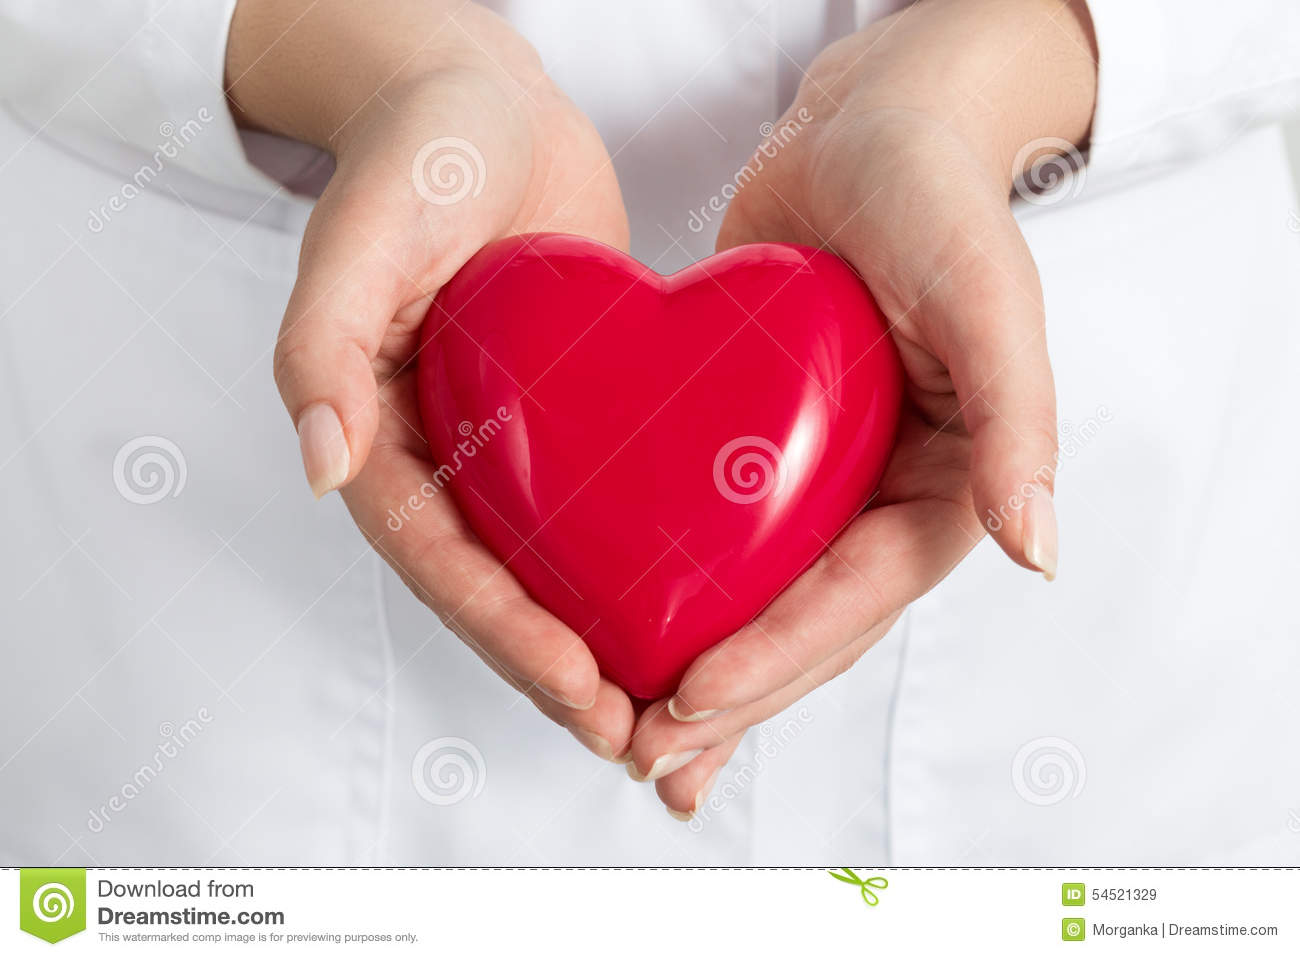 Female doctors s hands holding and covering red heart